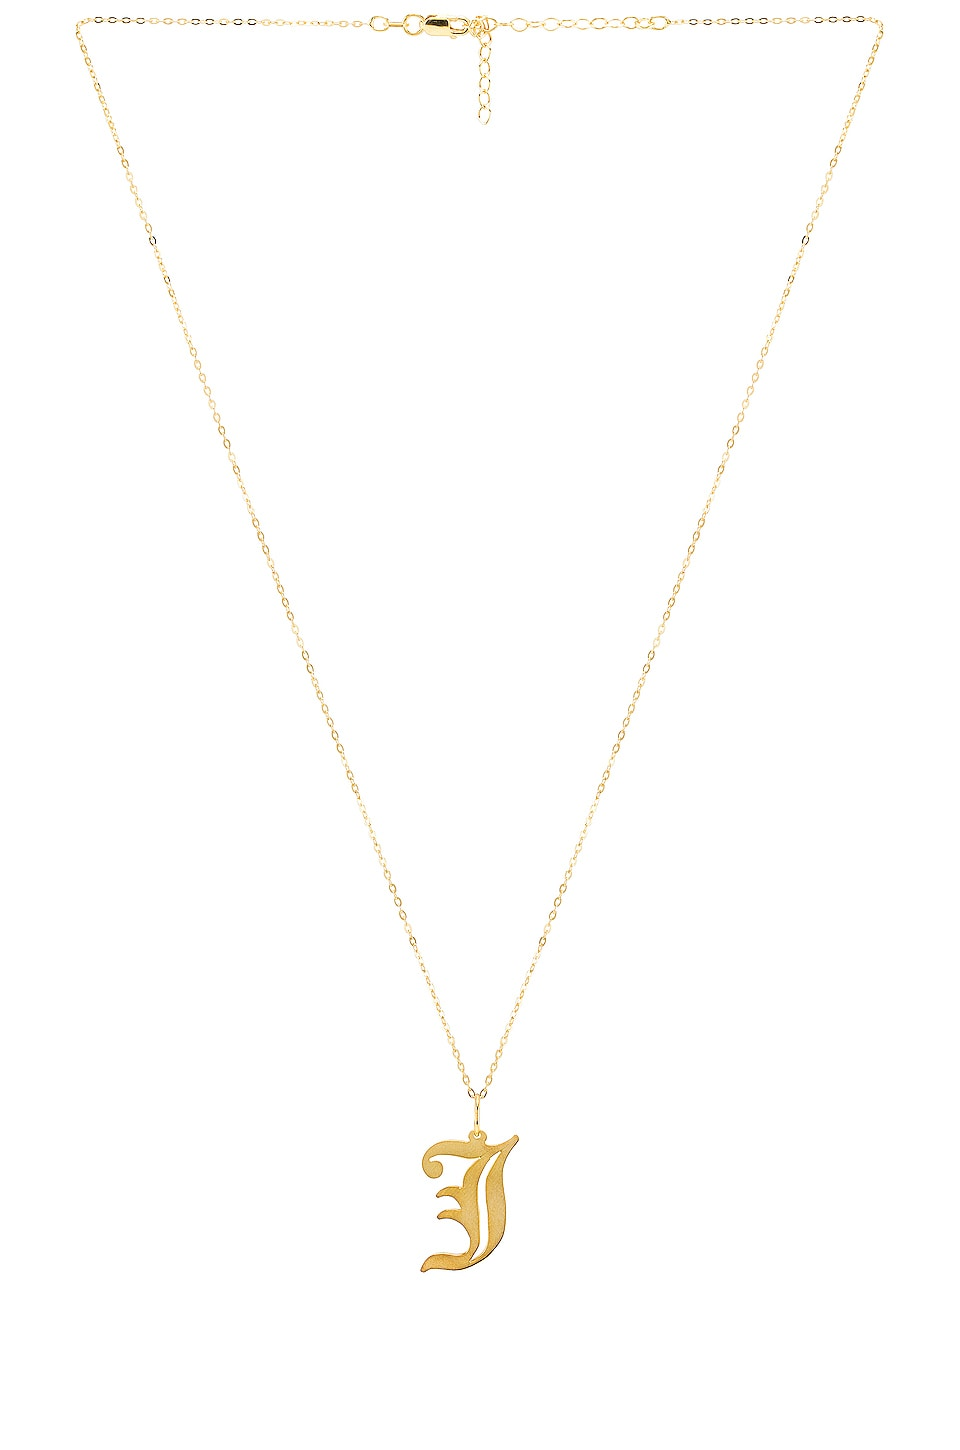 The M Jewelers NY The Old English J Pendant in Gold